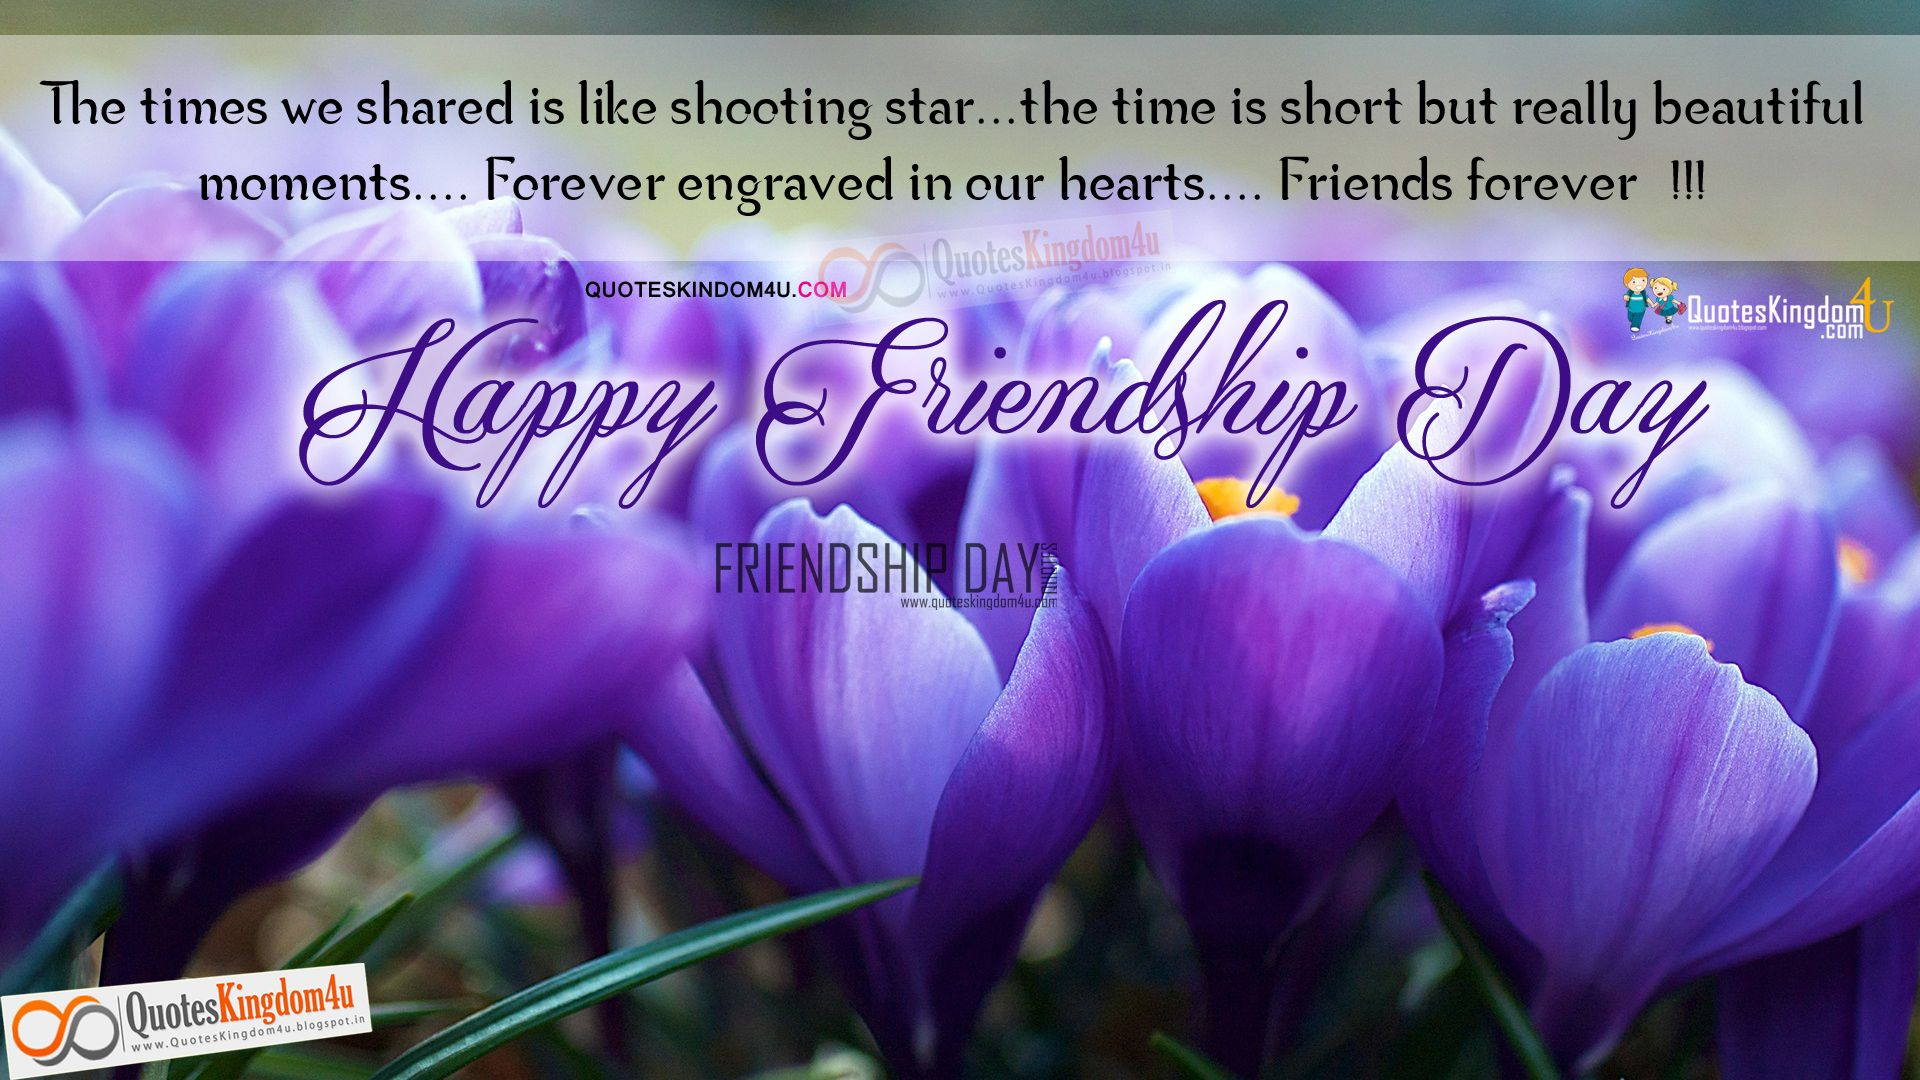 Nice Quotes About Friendship Friendship Day Wishes Images Pictures In English Friendship Day Hd